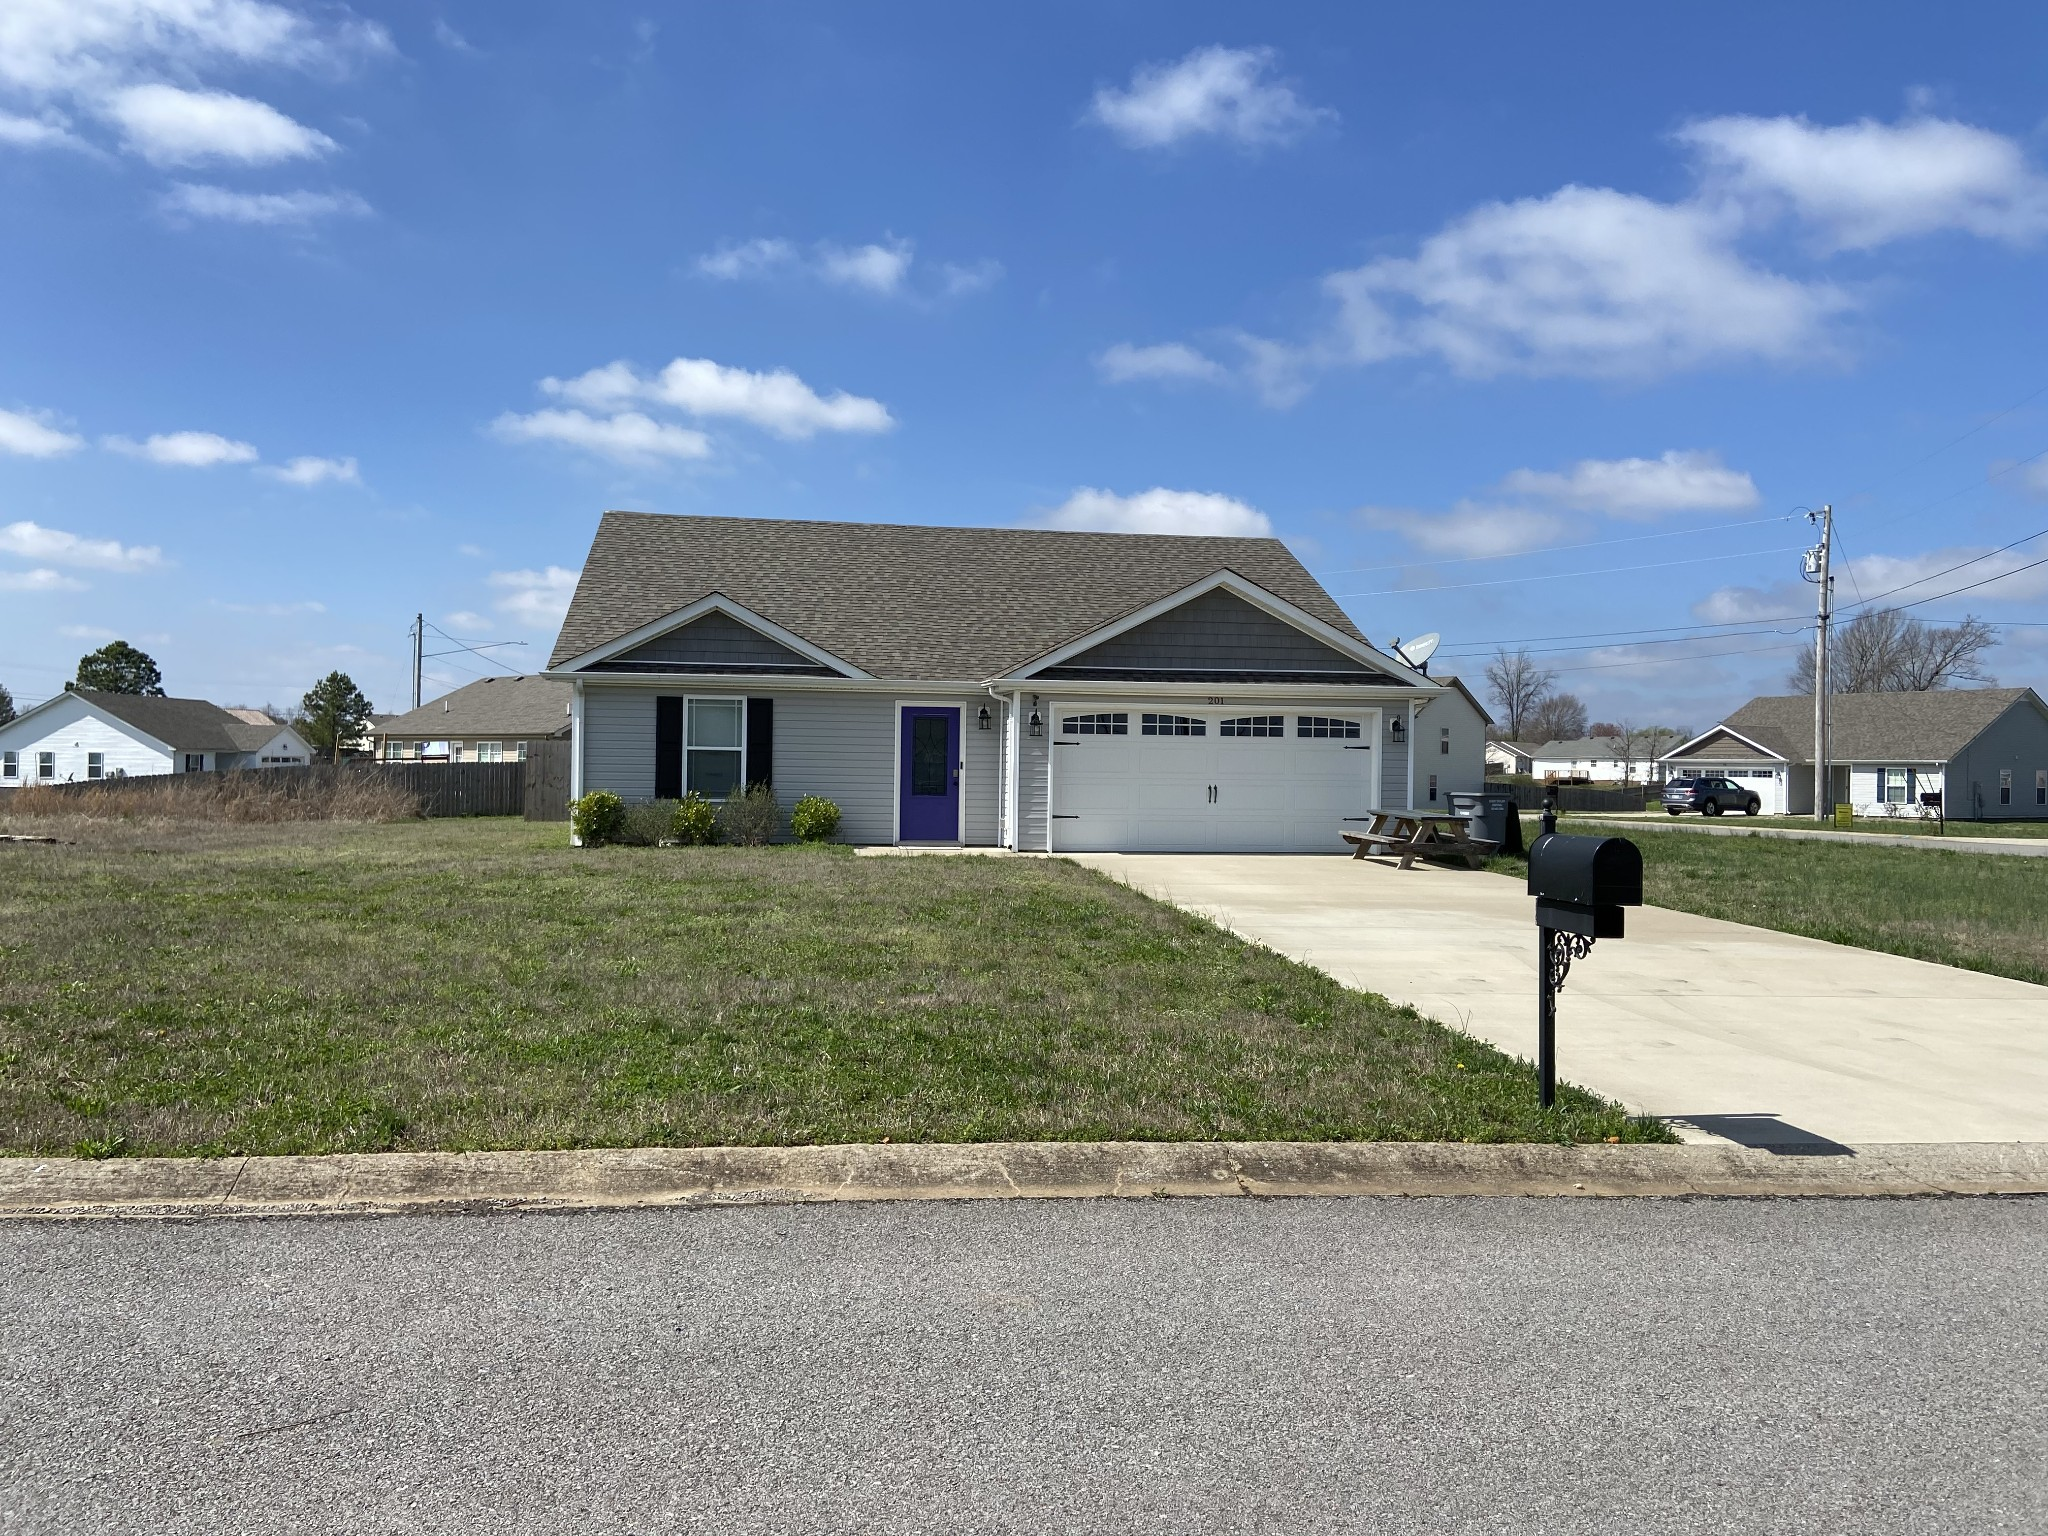 201 Buckshot Dr, Oak Grove, KY 42262 - Oak Grove, KY real estate listing